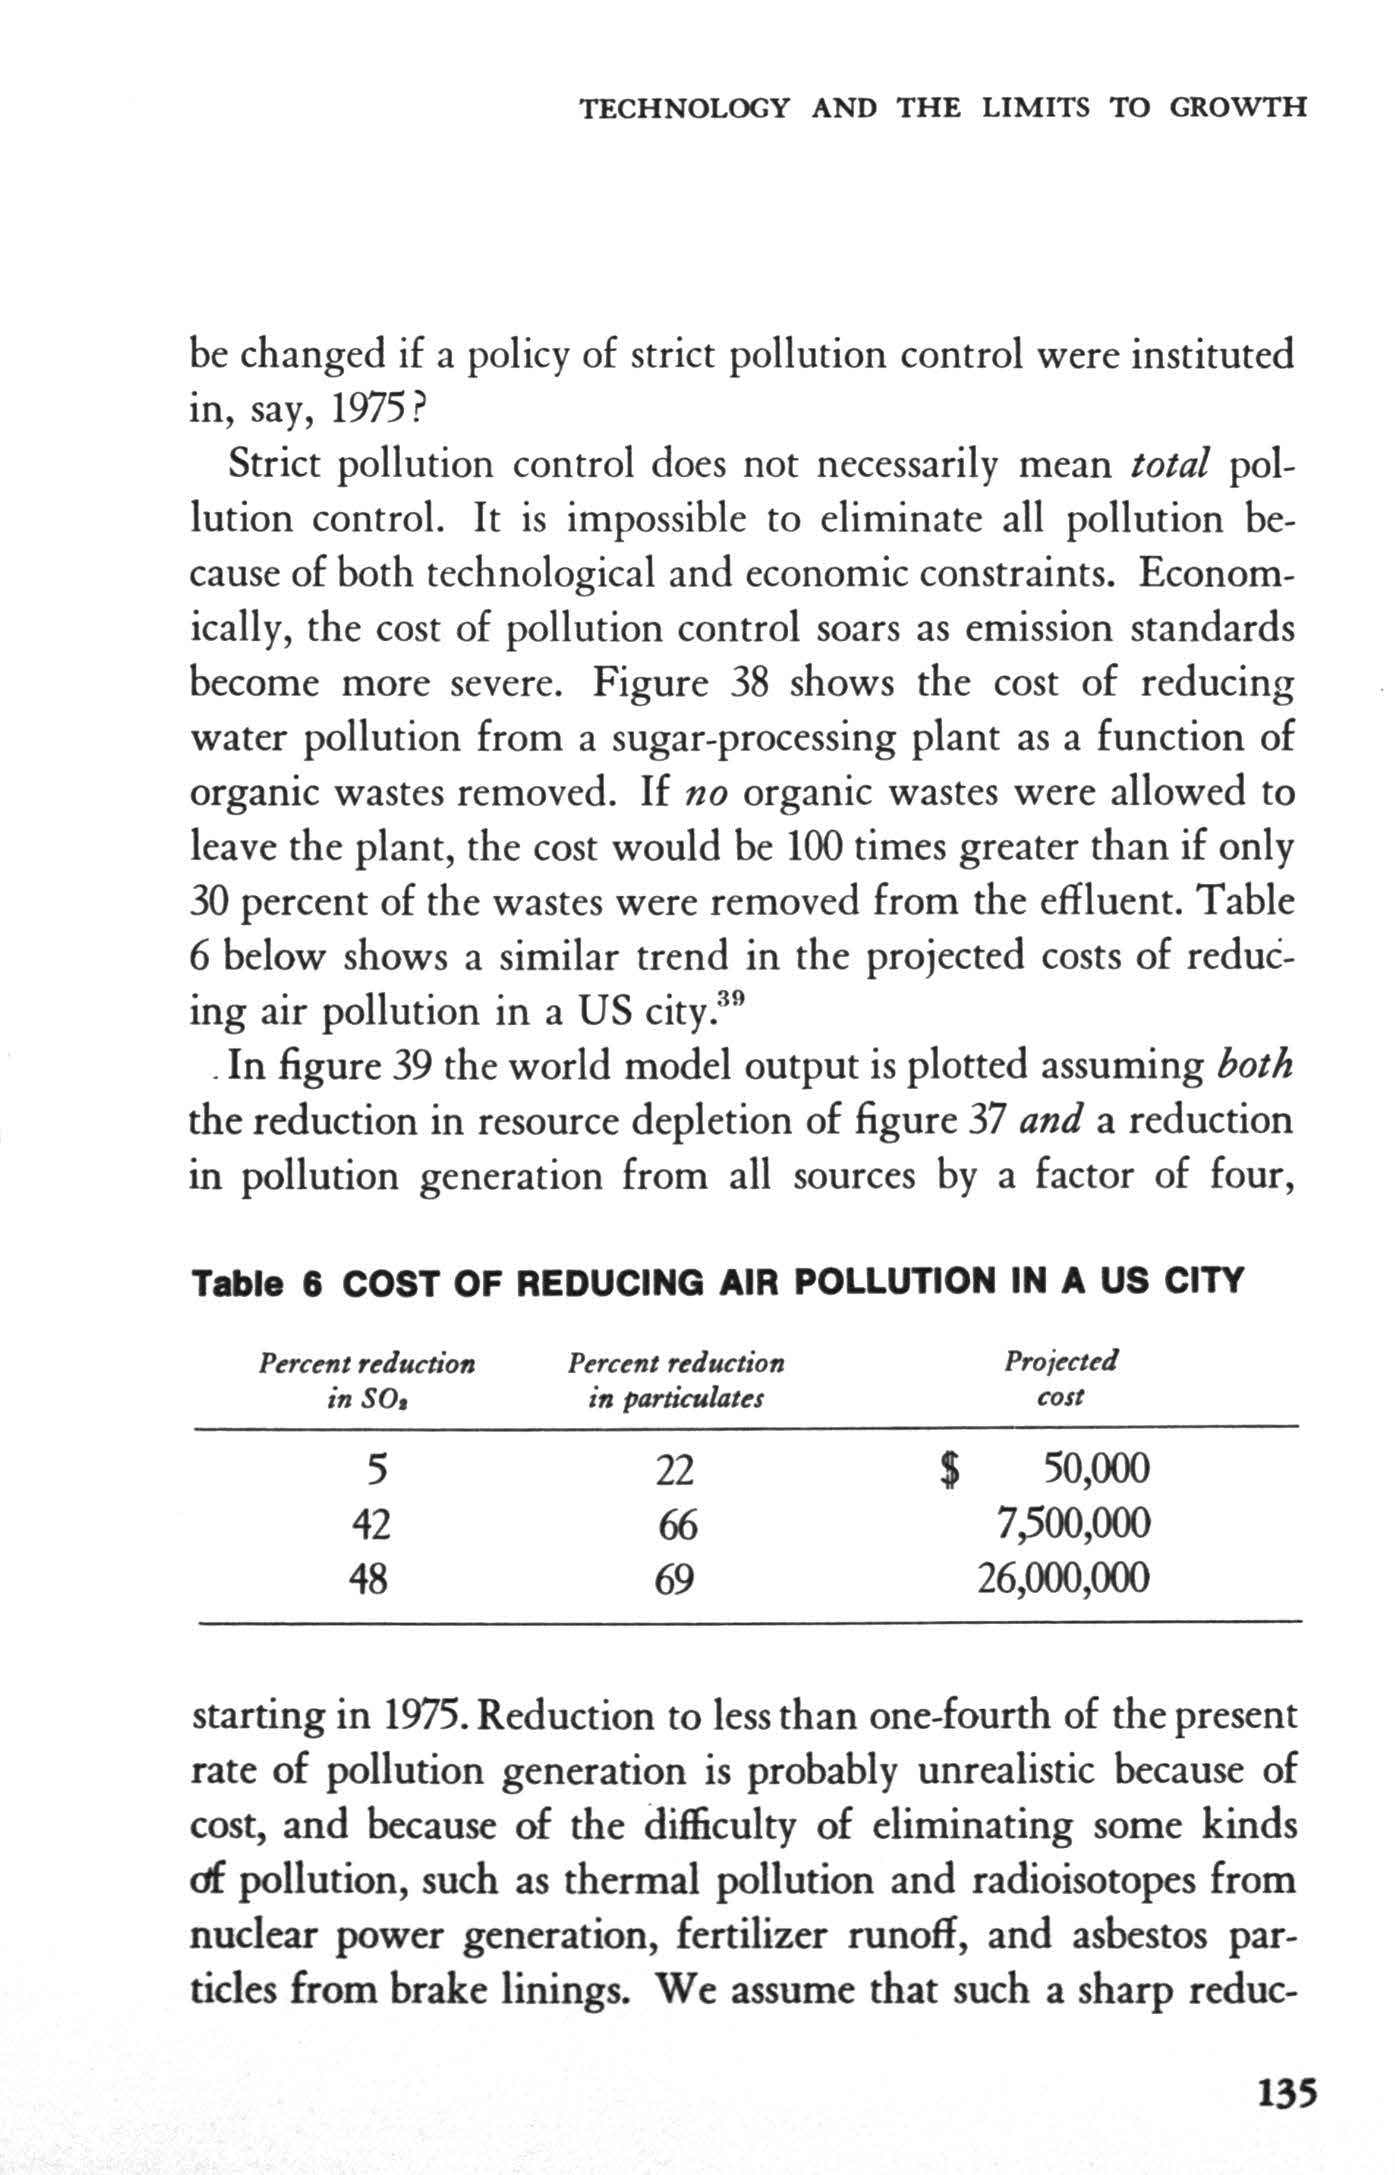 TECHNOLOGY AND THE LMTS TO GROWTH be changed if a policy of strict pollution control were instituted in, say, 1975? Strict pollution control does not necessarily mean total pollution control.